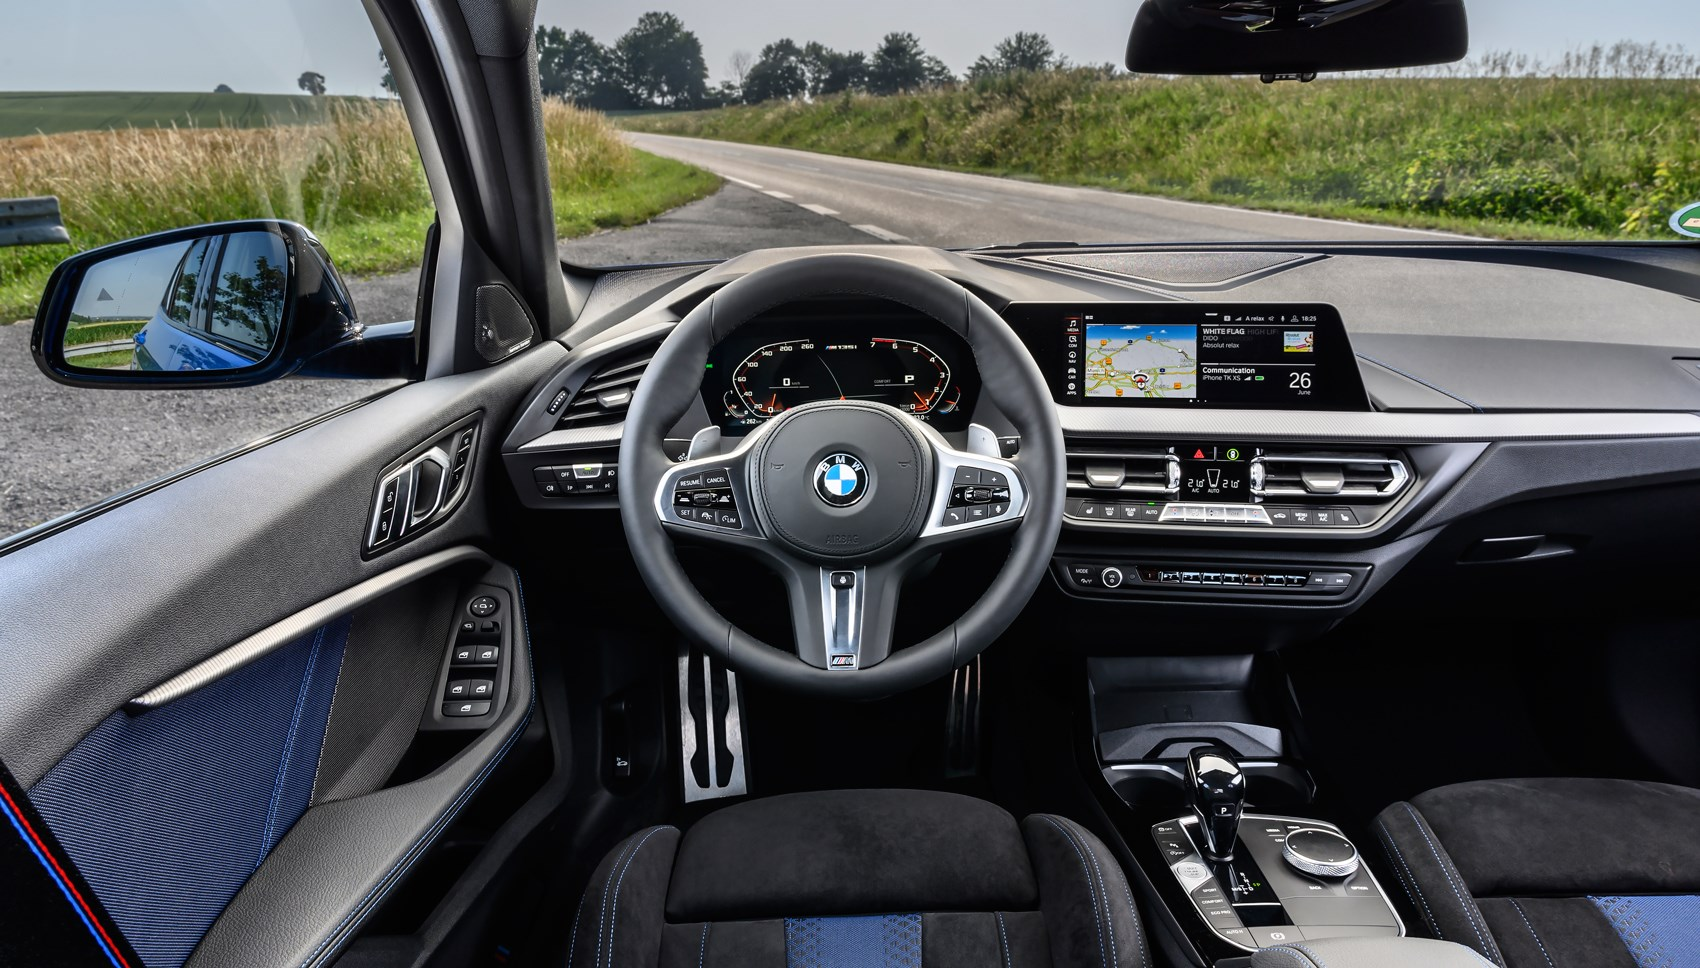 Bmw 1 Series Review Testing The 118i In The Uk Car Magazine